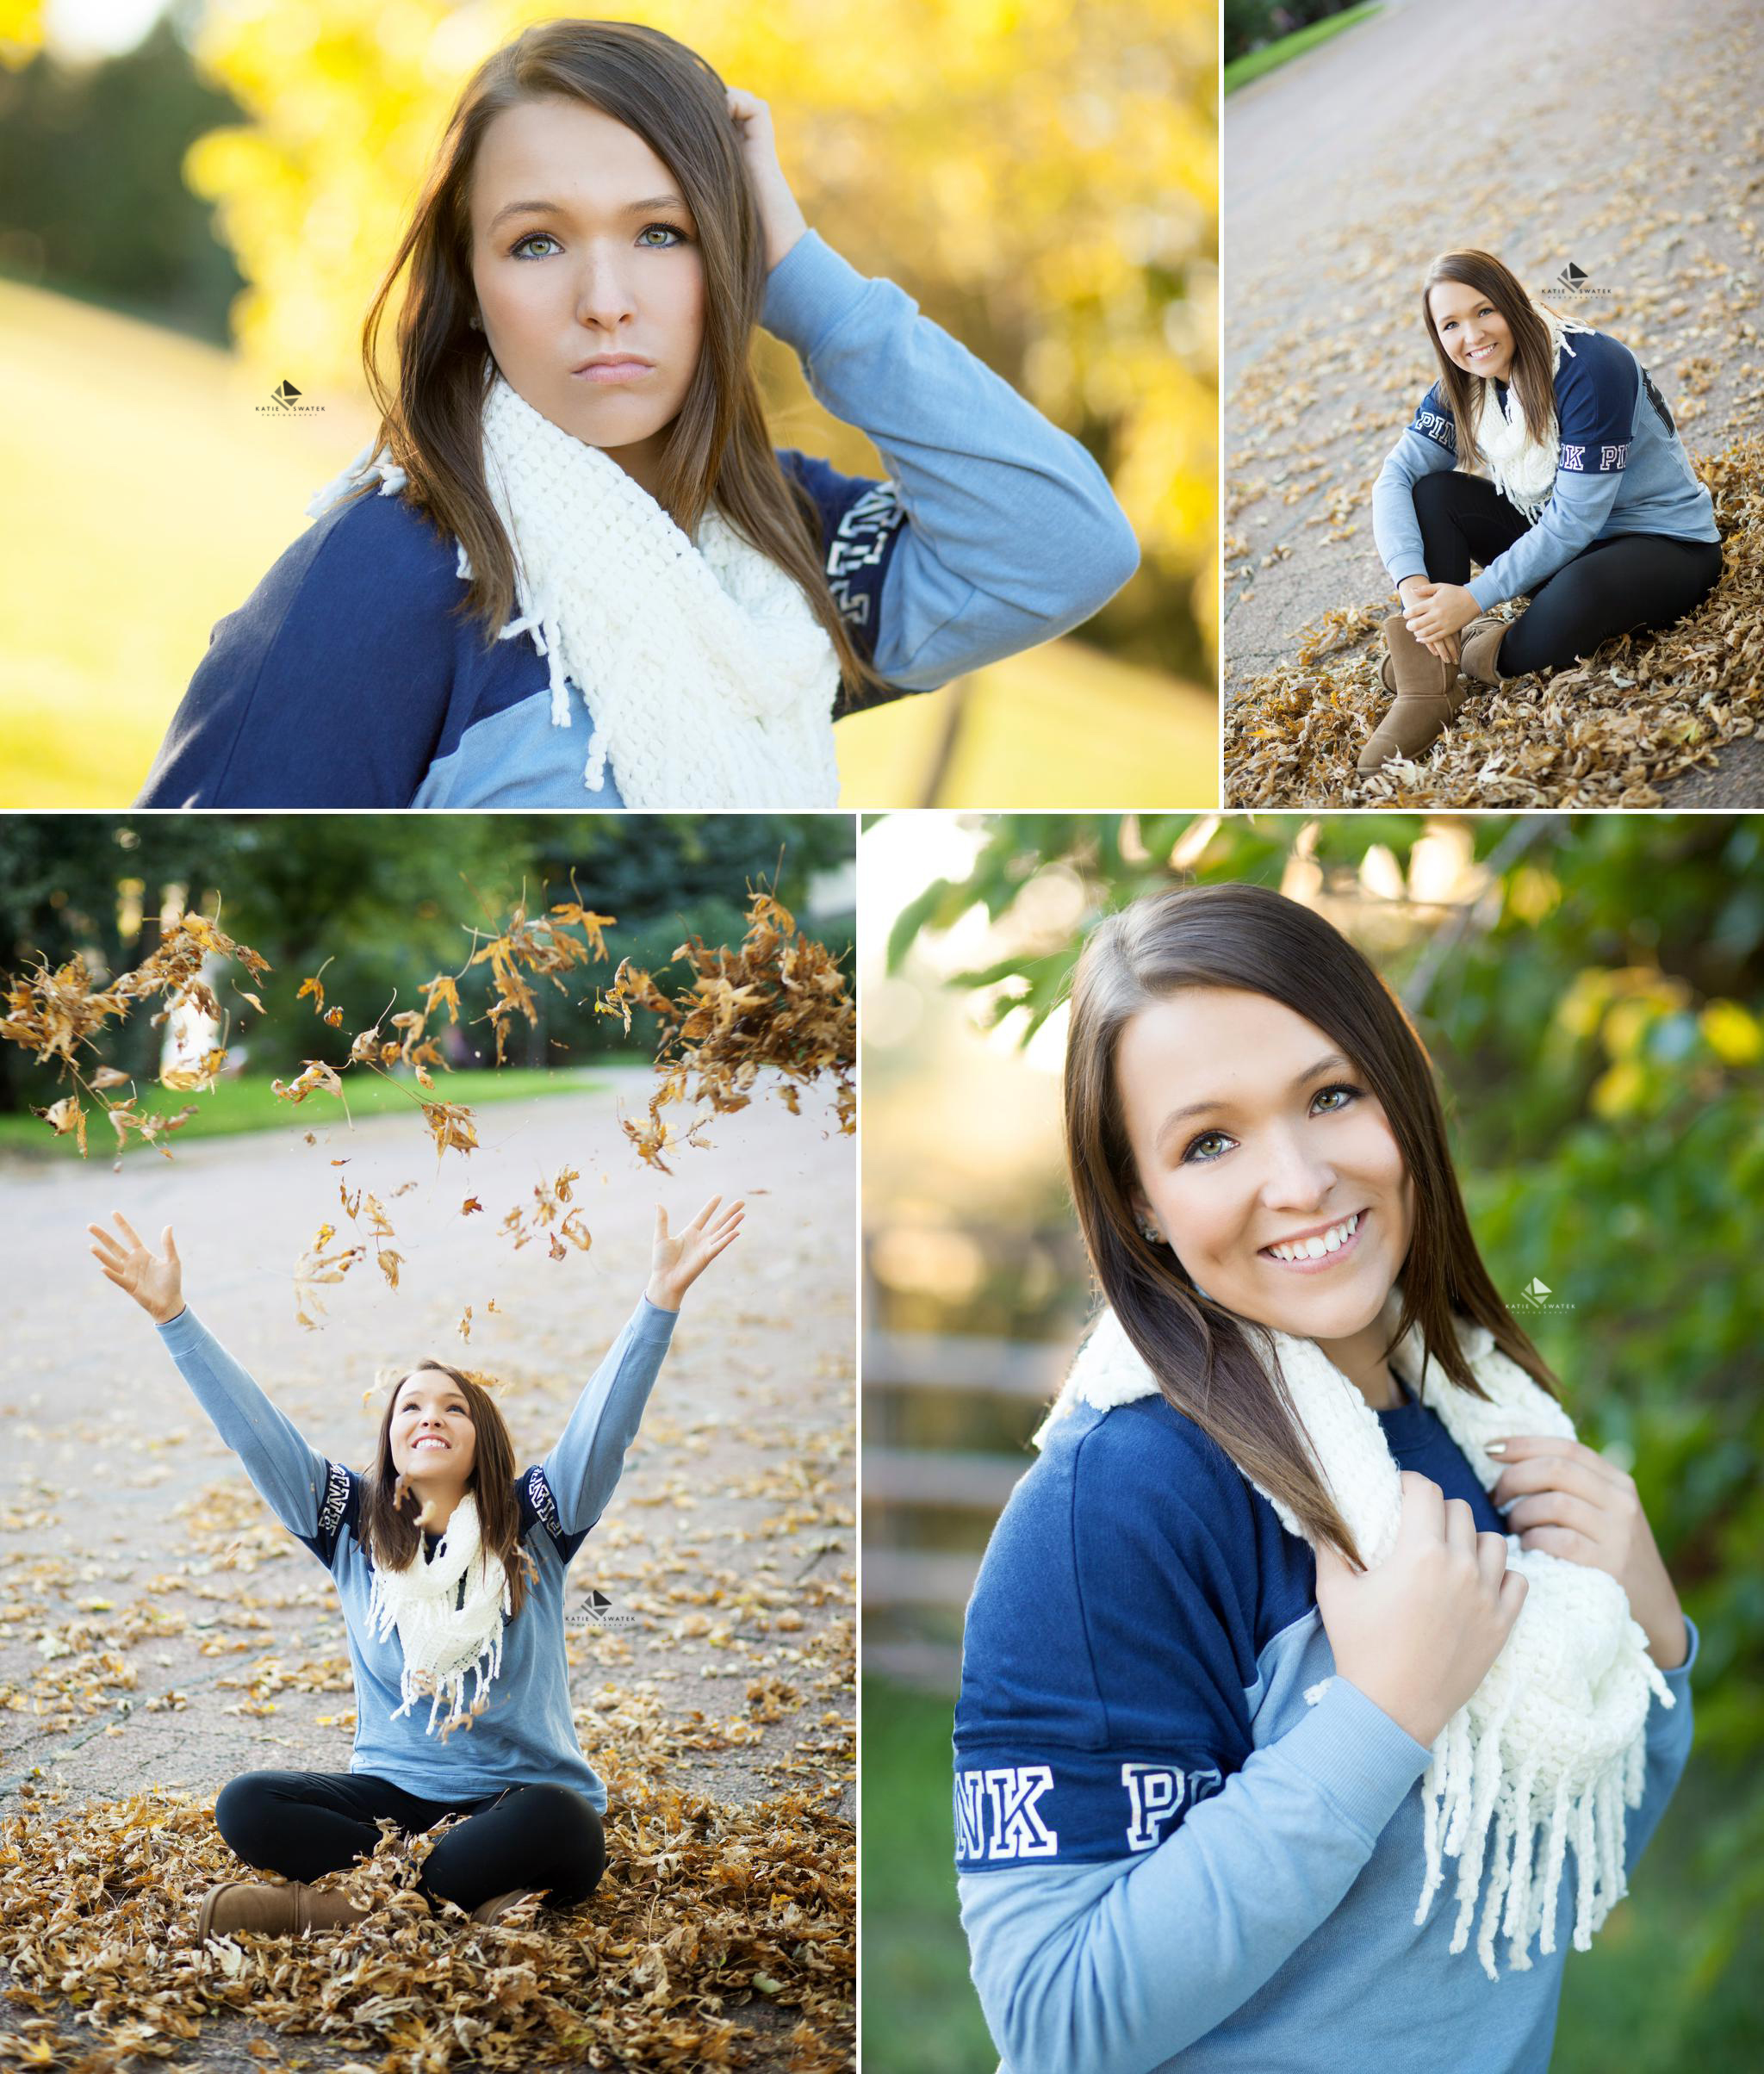 brunette senior girl in a blue sweatshirt and white scarf throwing fall leaves and standing in front of a yellow leafed tree